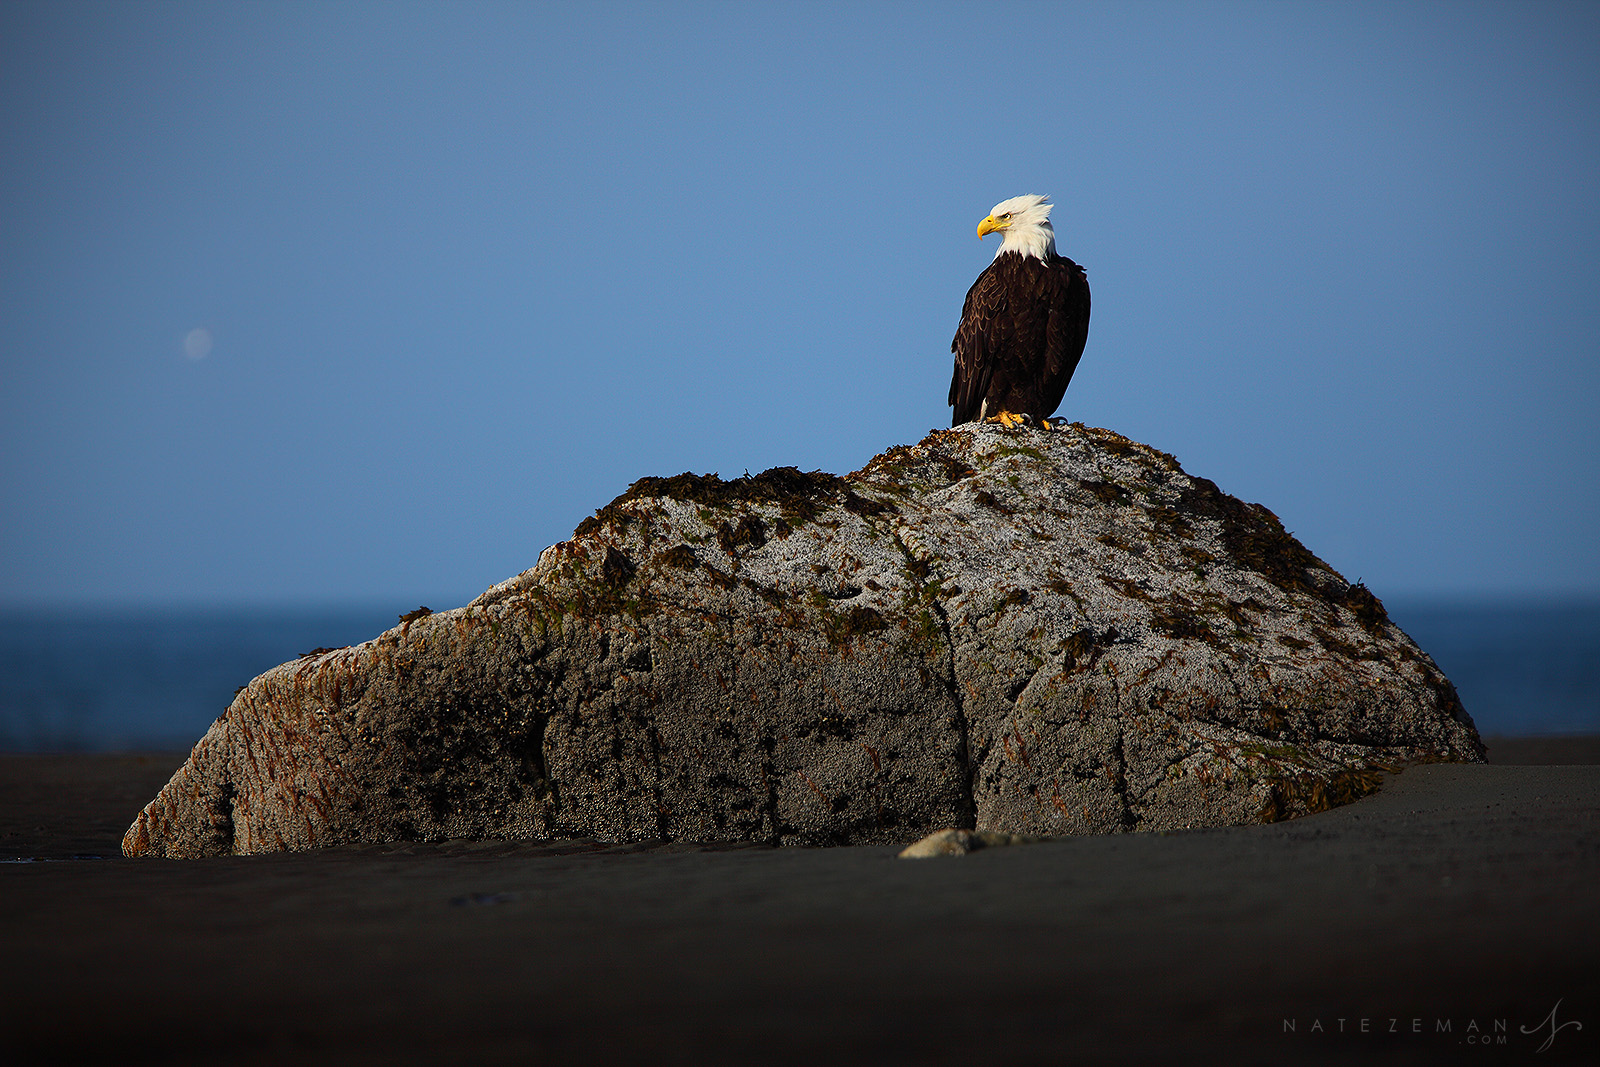 A lone bald eagle perches atop a large rock at low tide. Purchase Prints and Wall Art Print Options, Sizes and Prices: